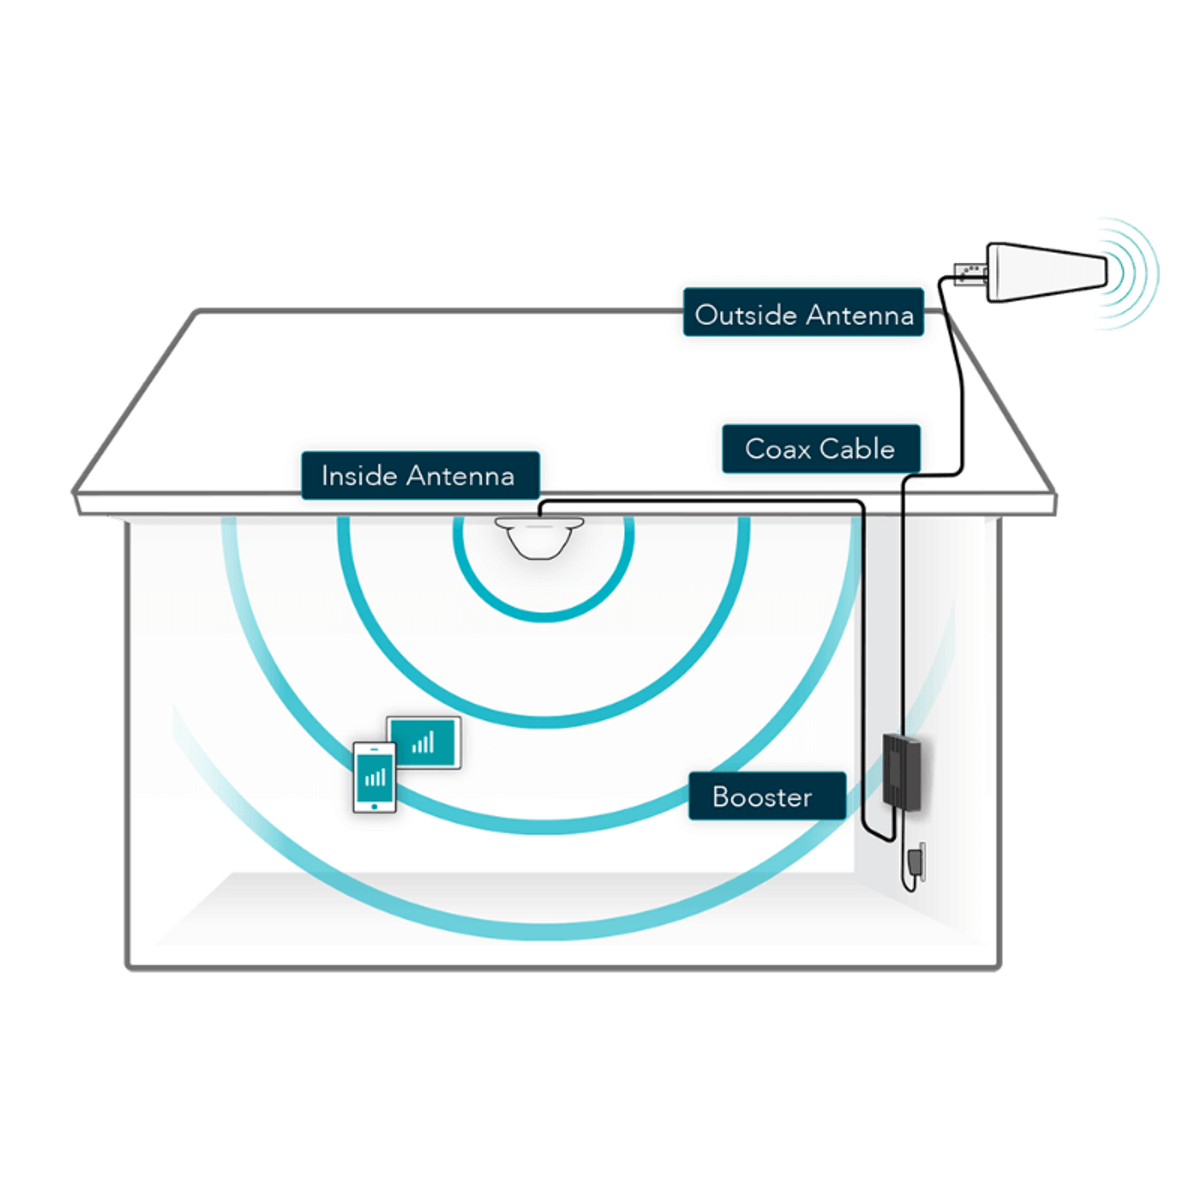 SureCall Fusion4Home Yagi/Dome Cell Phone Signal Booster Installation Diagram - How It Works